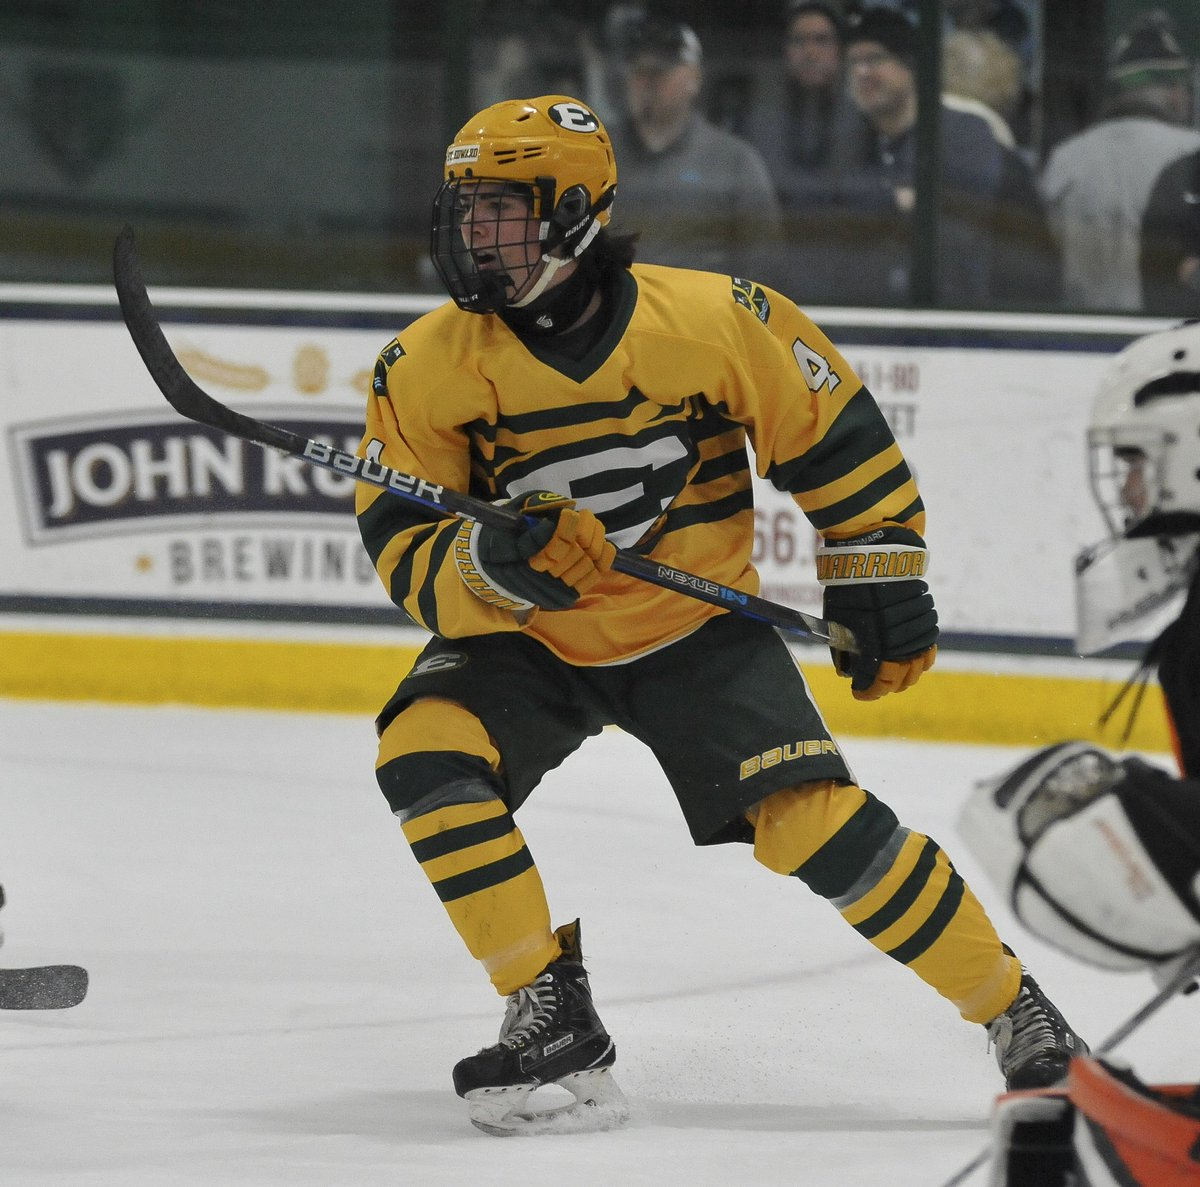 Time to place your vote for the @SEHSicehockey #EAGLES!! ohiohockeydigest.com/page/show/5728…